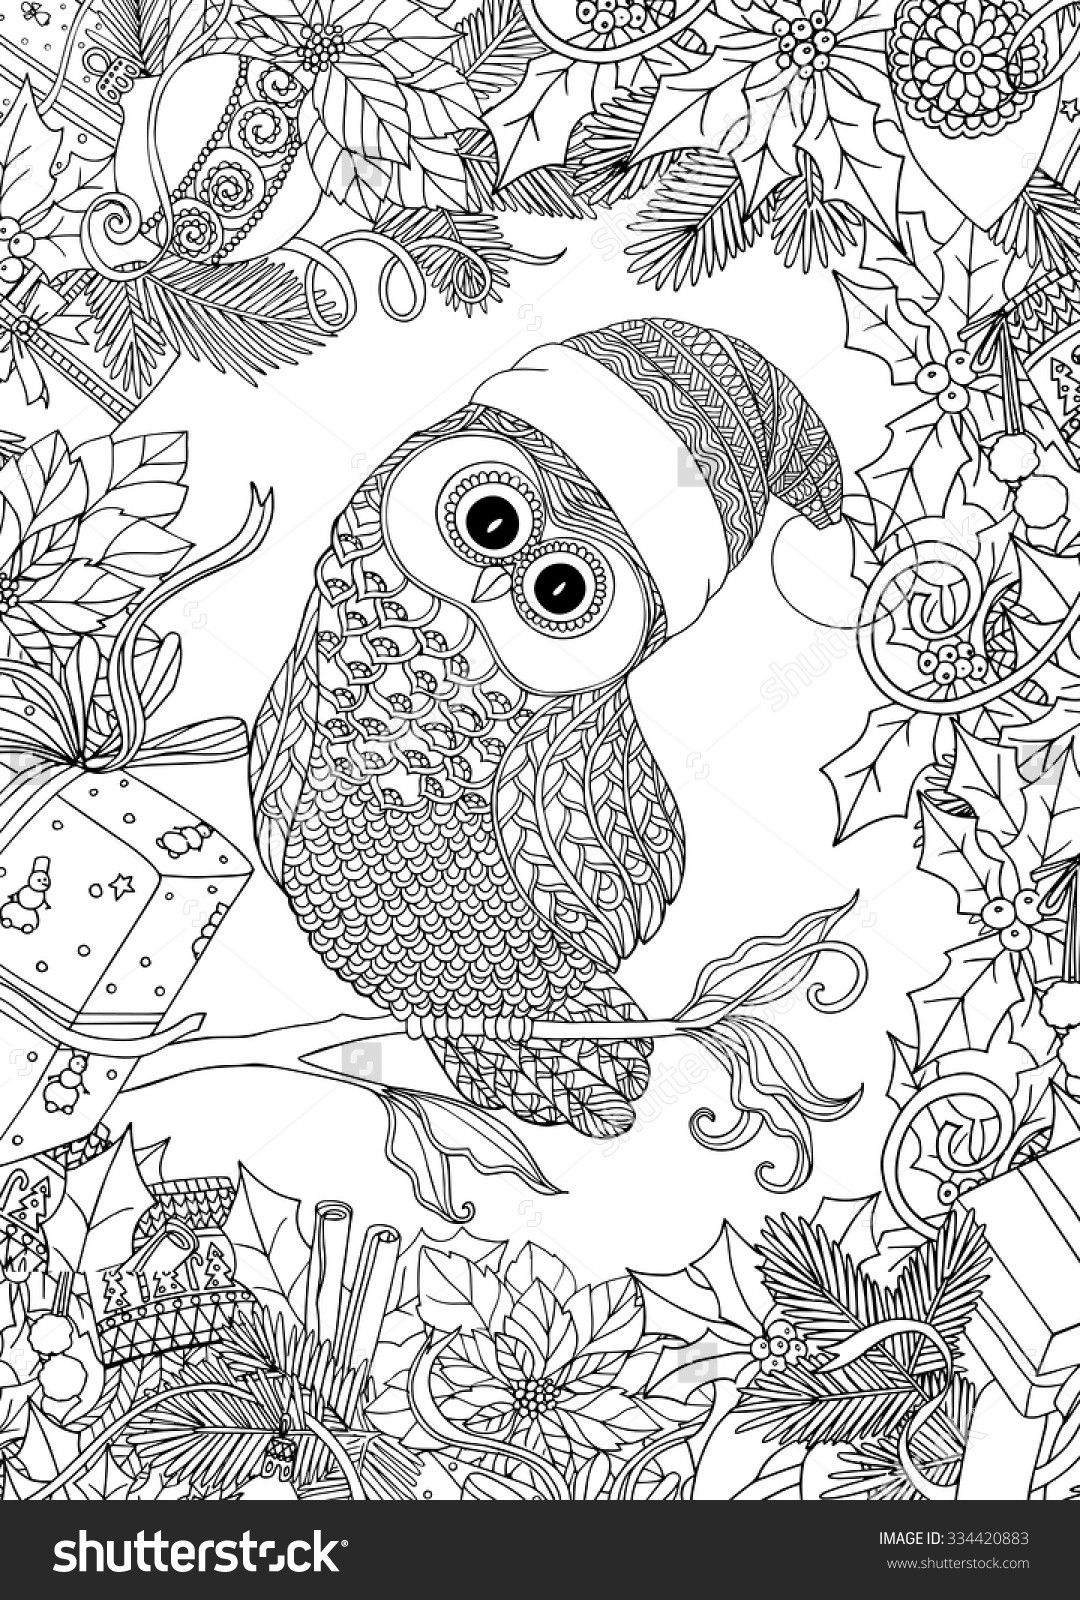 Christmas Printable Coloring Sheets For Older Kids  Christmas Coloring Pages For Older Kids